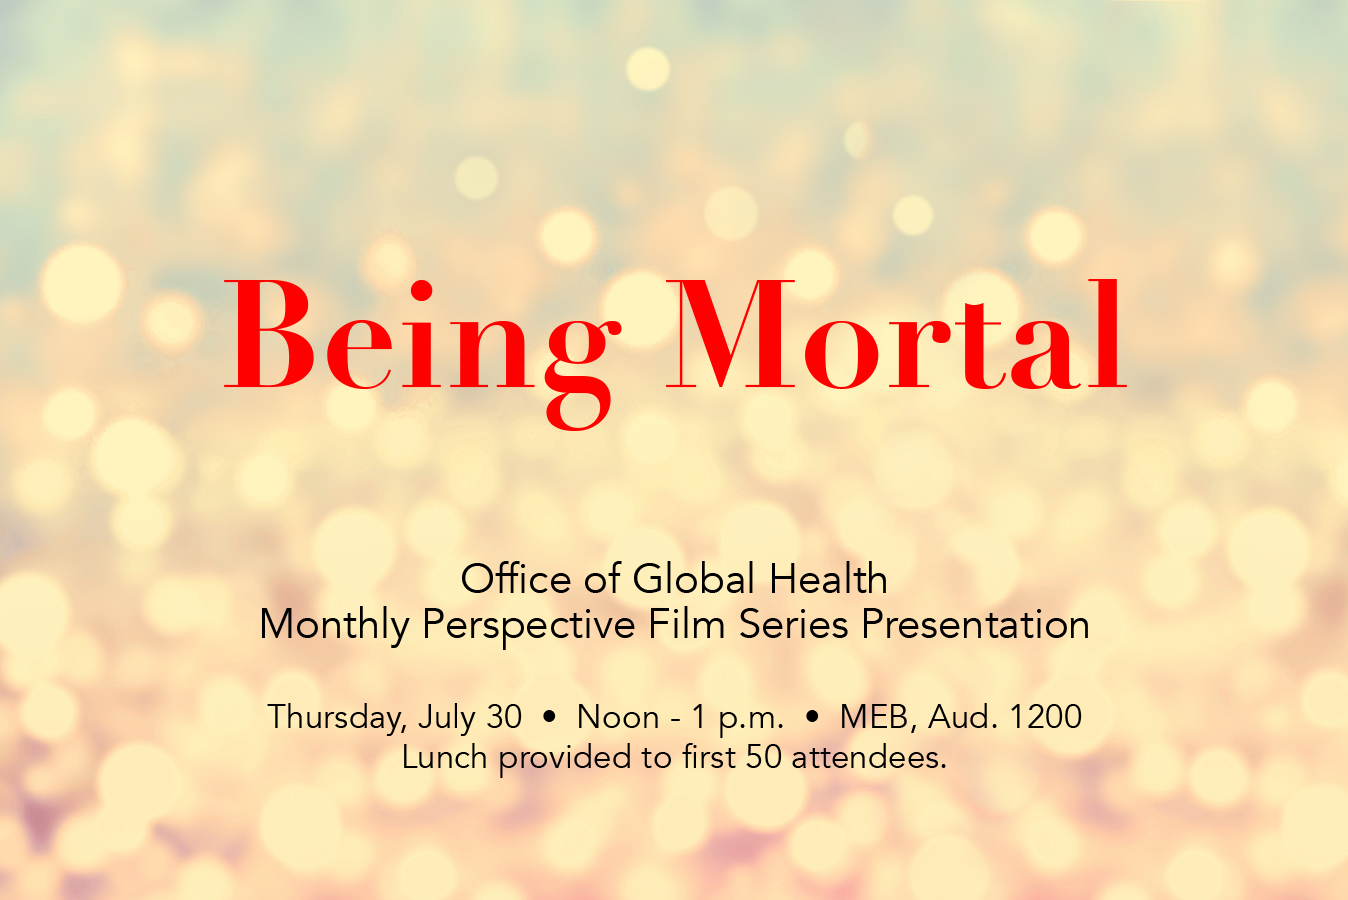 Office of Global Health Perspectives Film Series